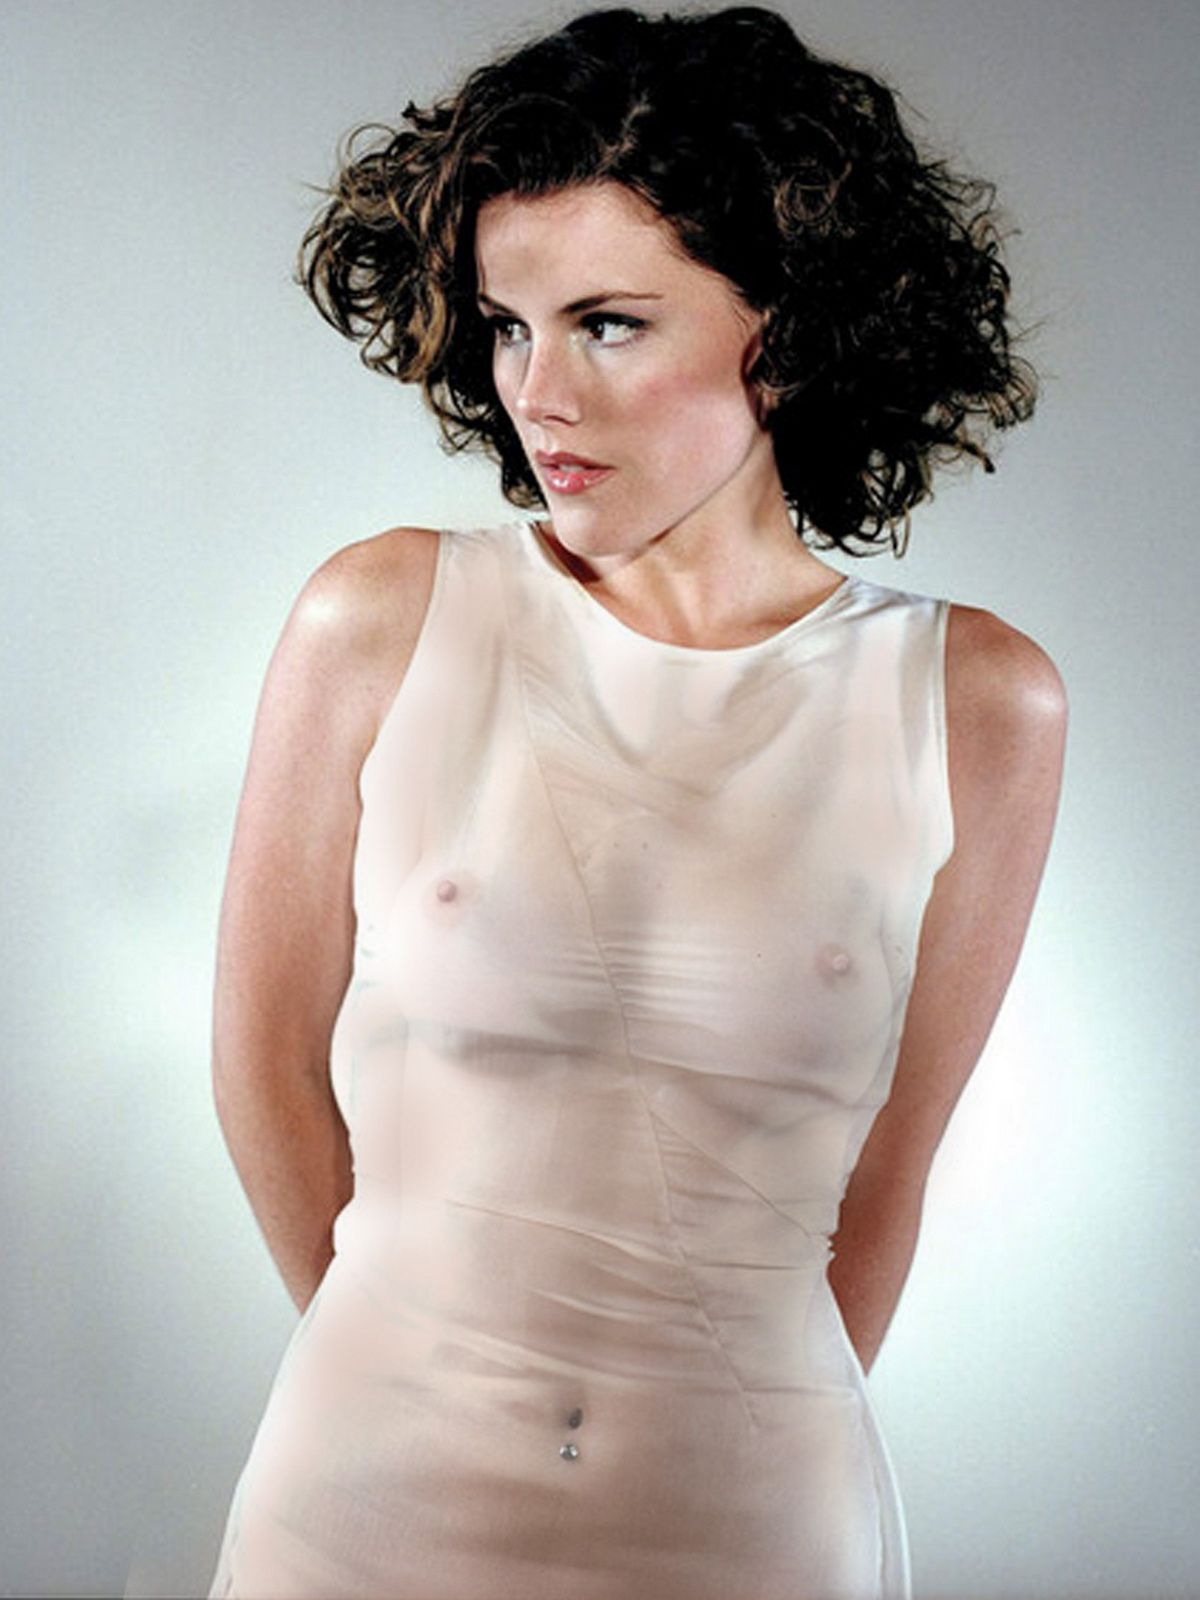 Can Kathleen robertson hot